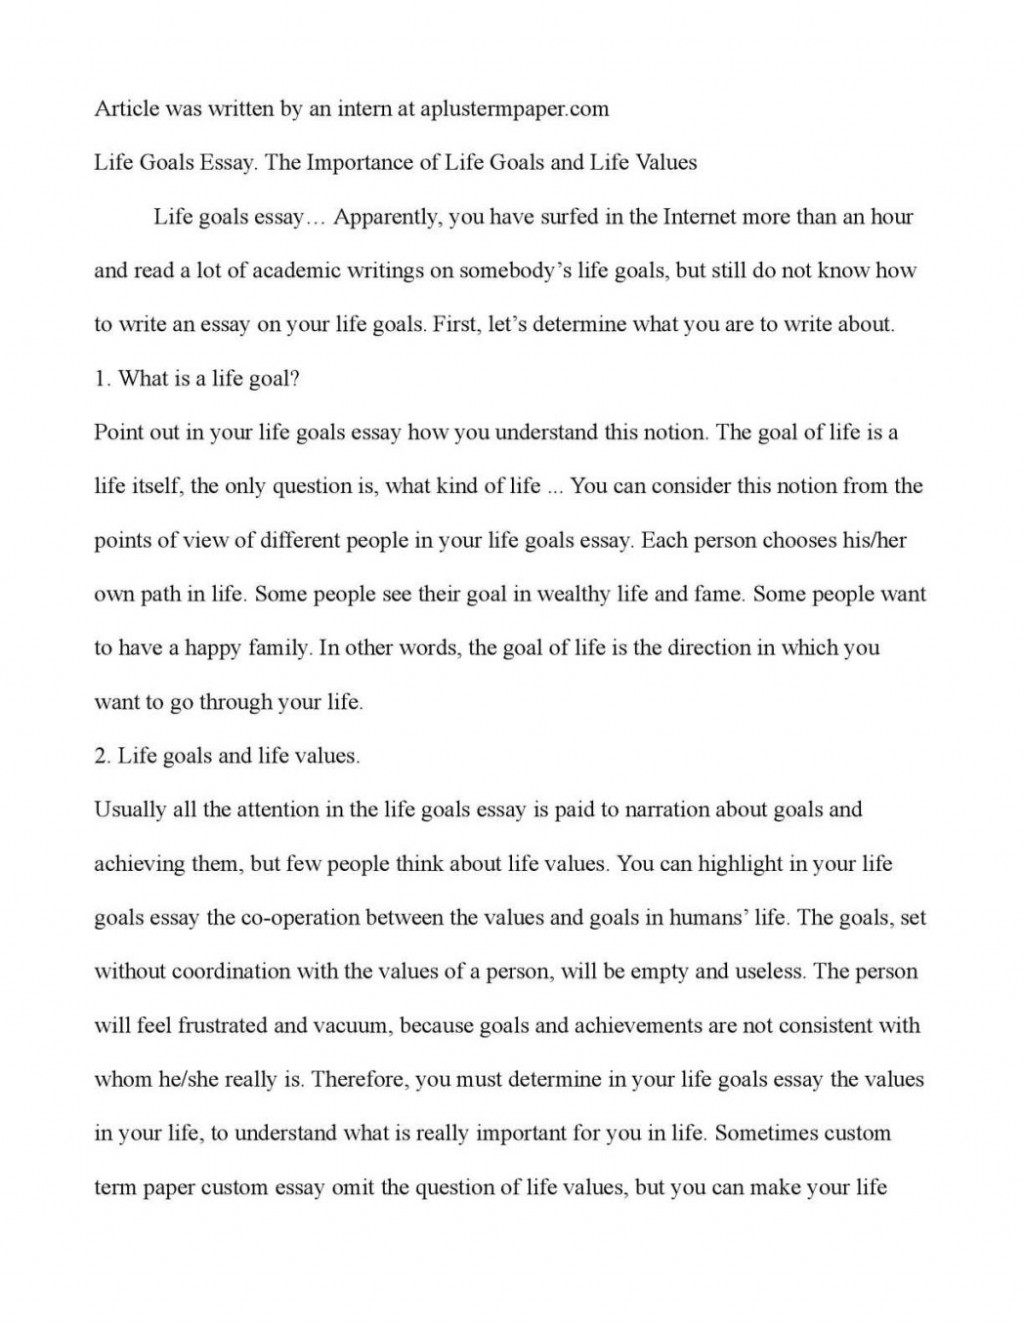 001 Goals In Life Essay Example Narrative On Achieving Goal My Purpose Exampl Examples Ambition Rare For Mba Career Future Large